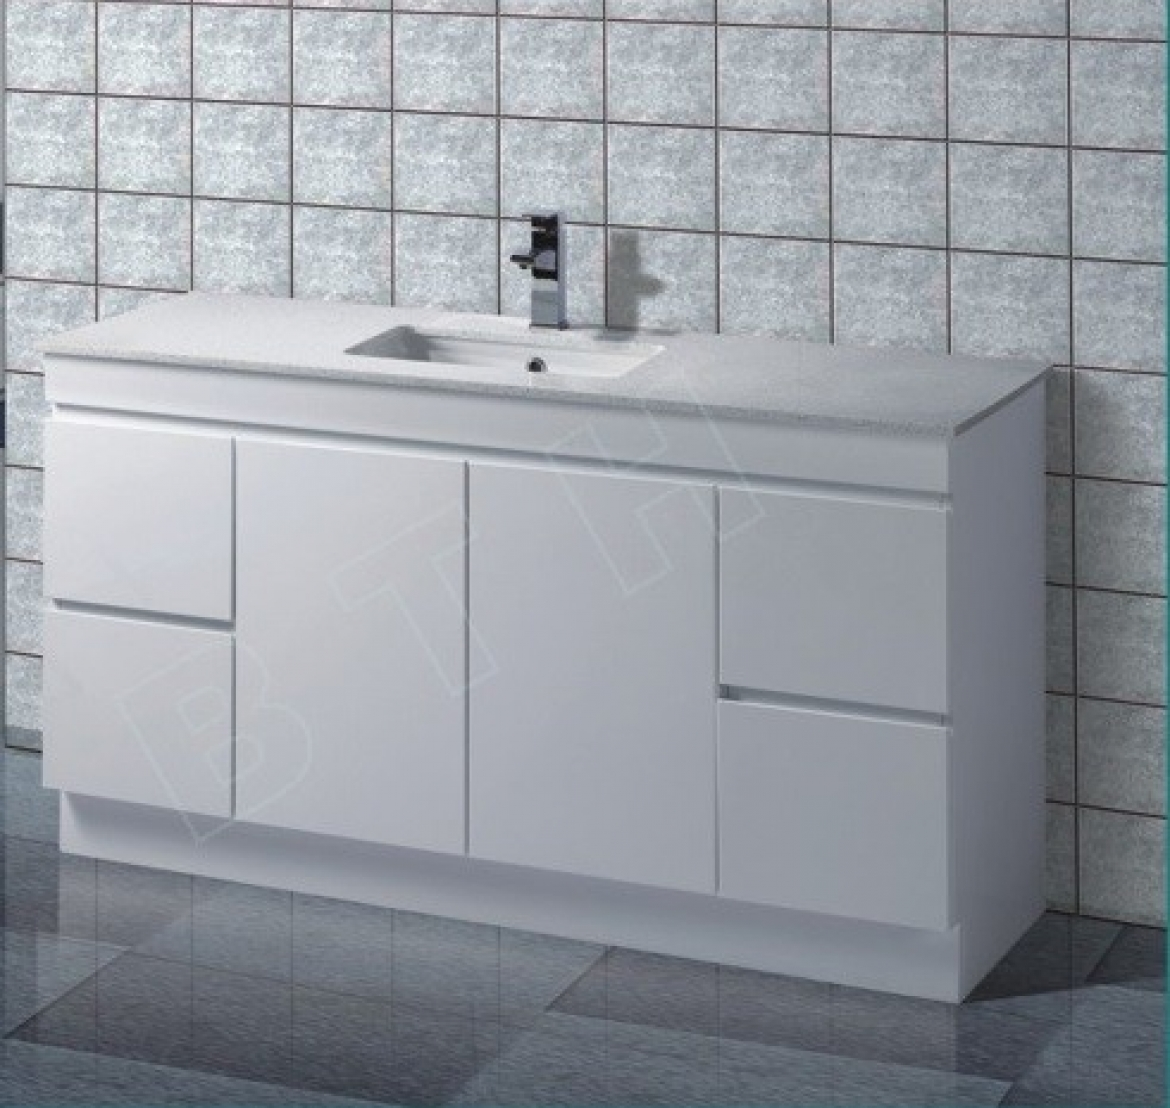 Bathroom stone top vanity [Single Basin-1300 mm]